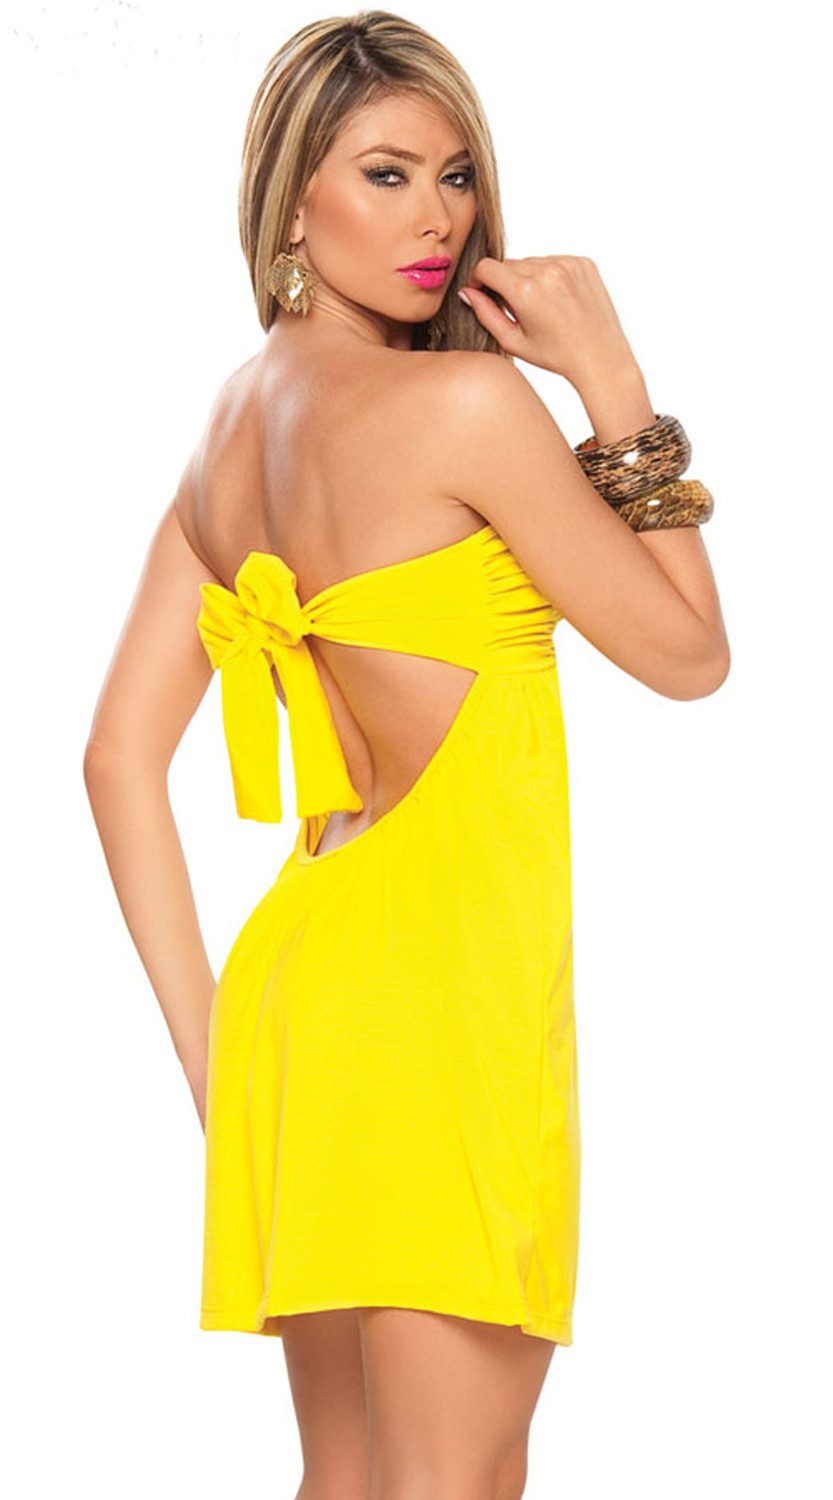 bf4dfb890813 Bow knot Yellow Sexy Mini Strapless Short Dress Skirt Lady Babydoll  Lingerie Leisure Dress Skirt Sexy Adult Party Costume(N82)-in Dresses from  Women's ...